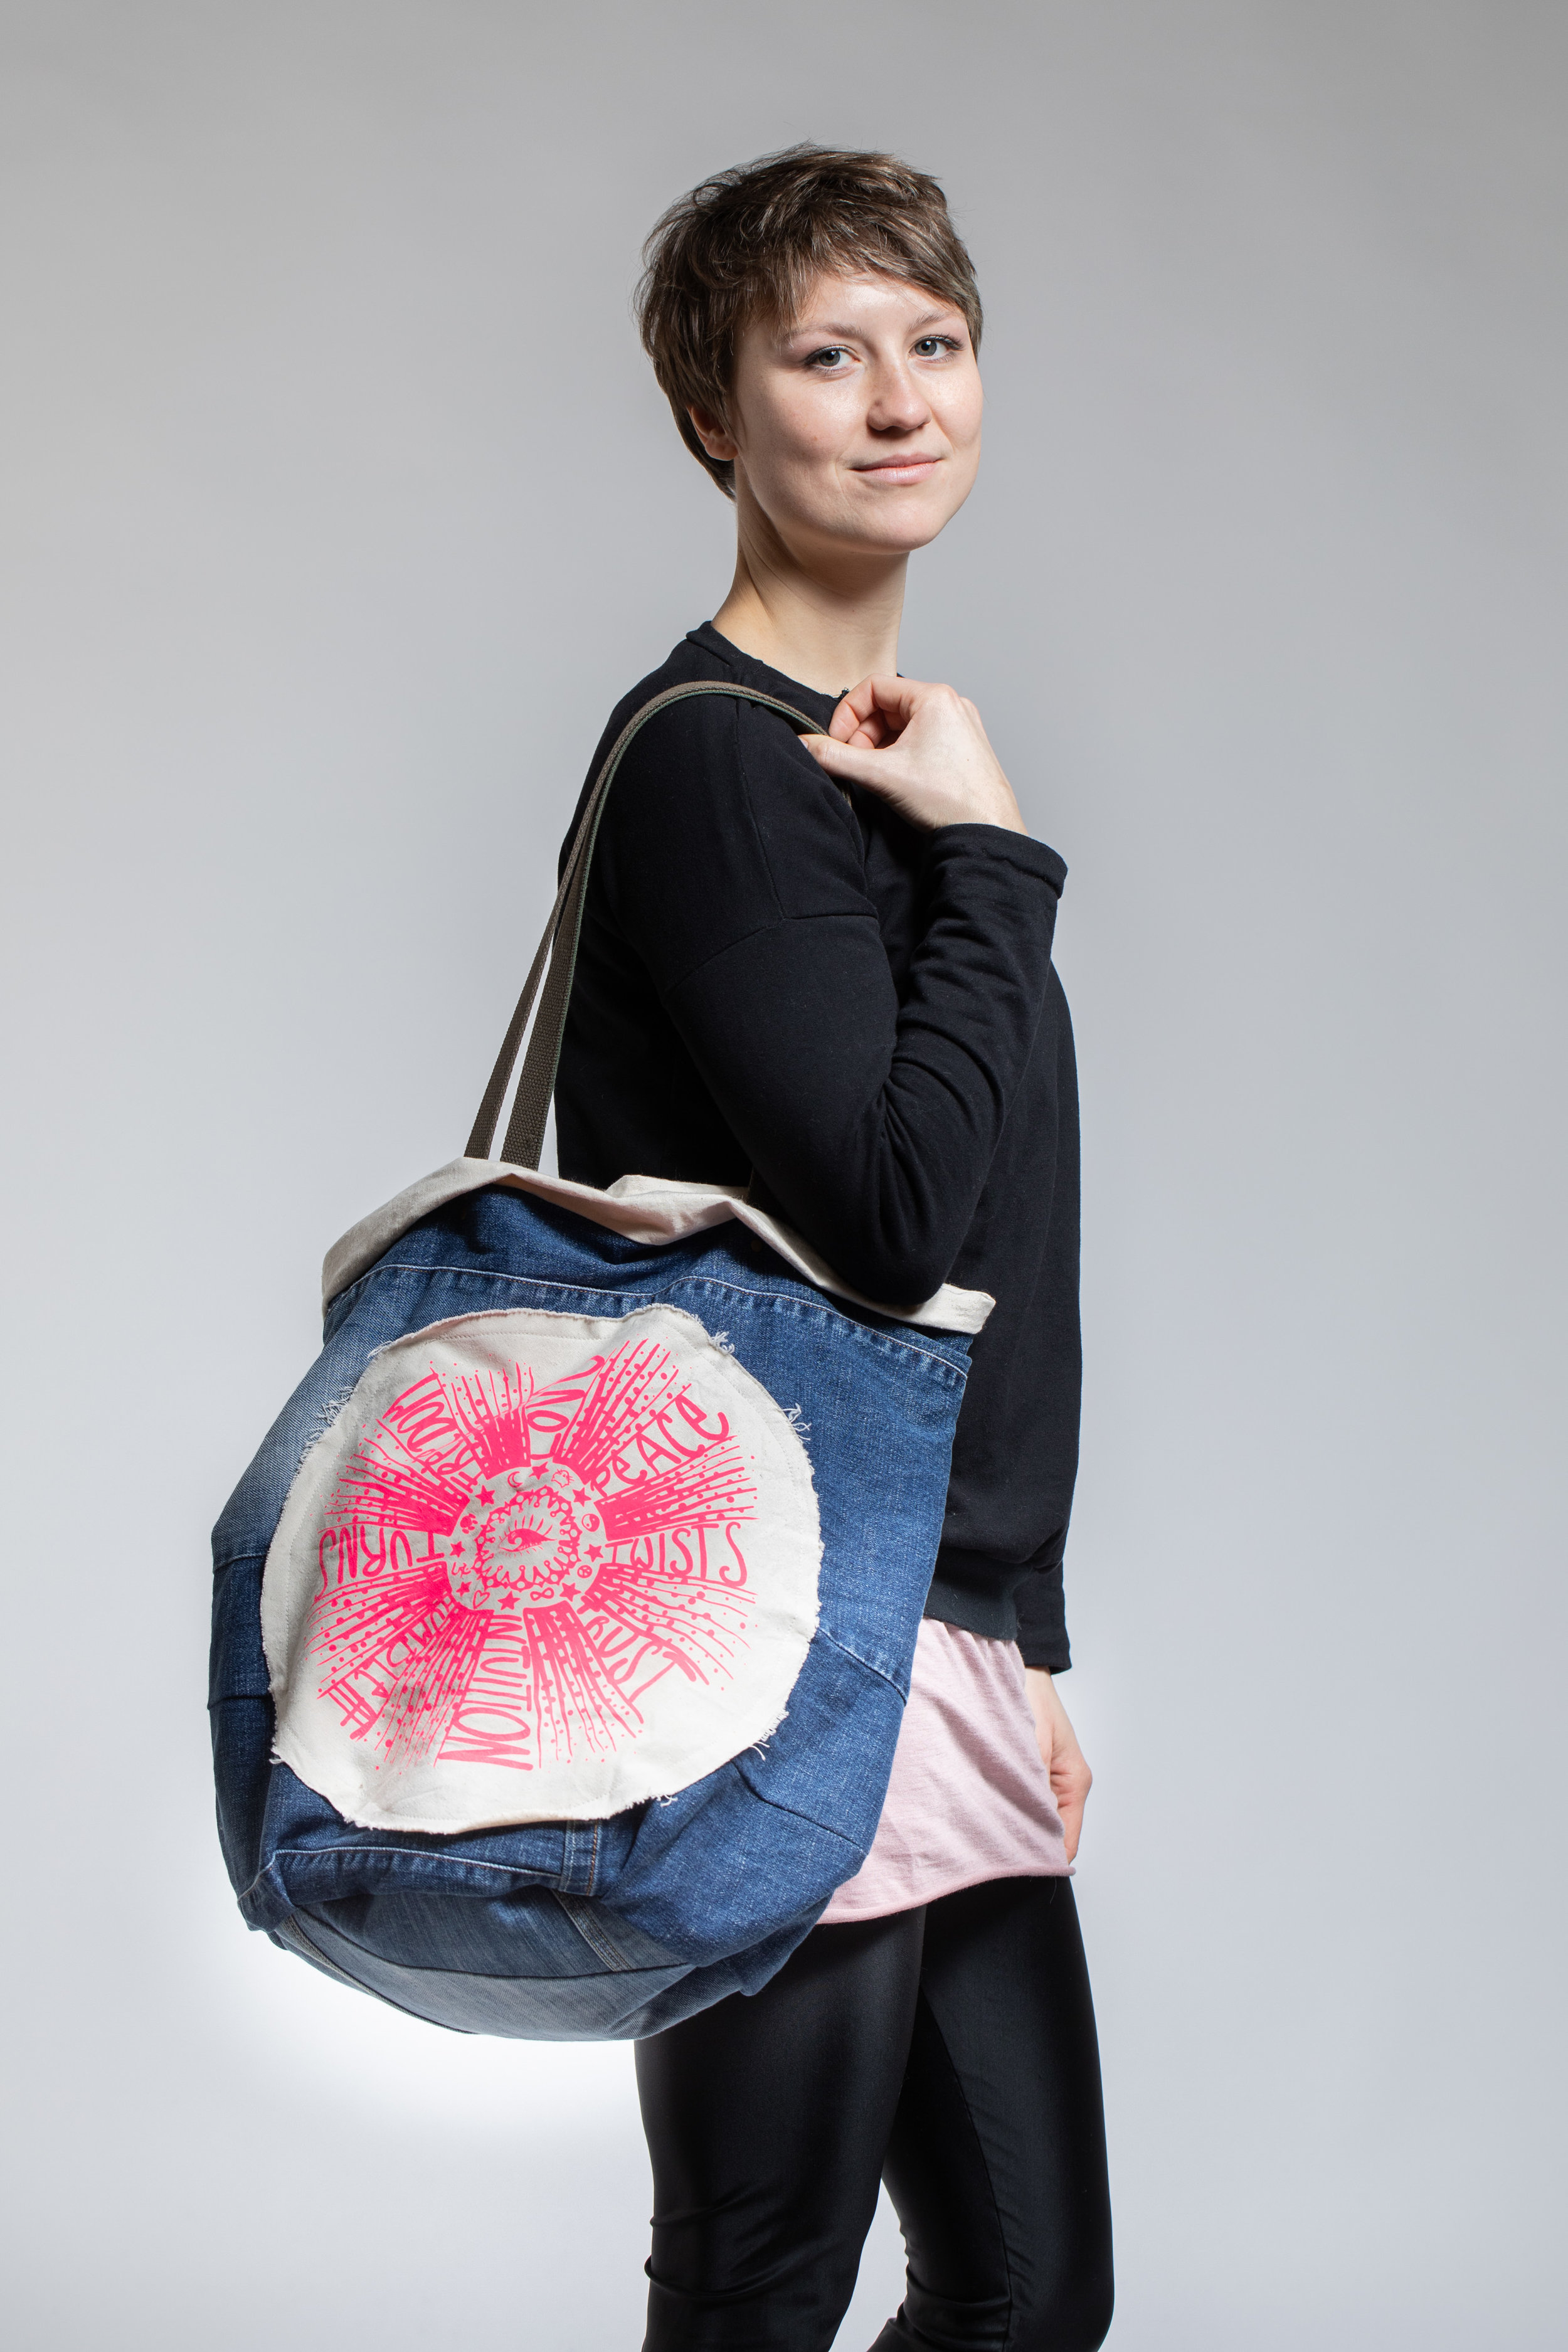 twists and turns bag the cure wearing.jpg